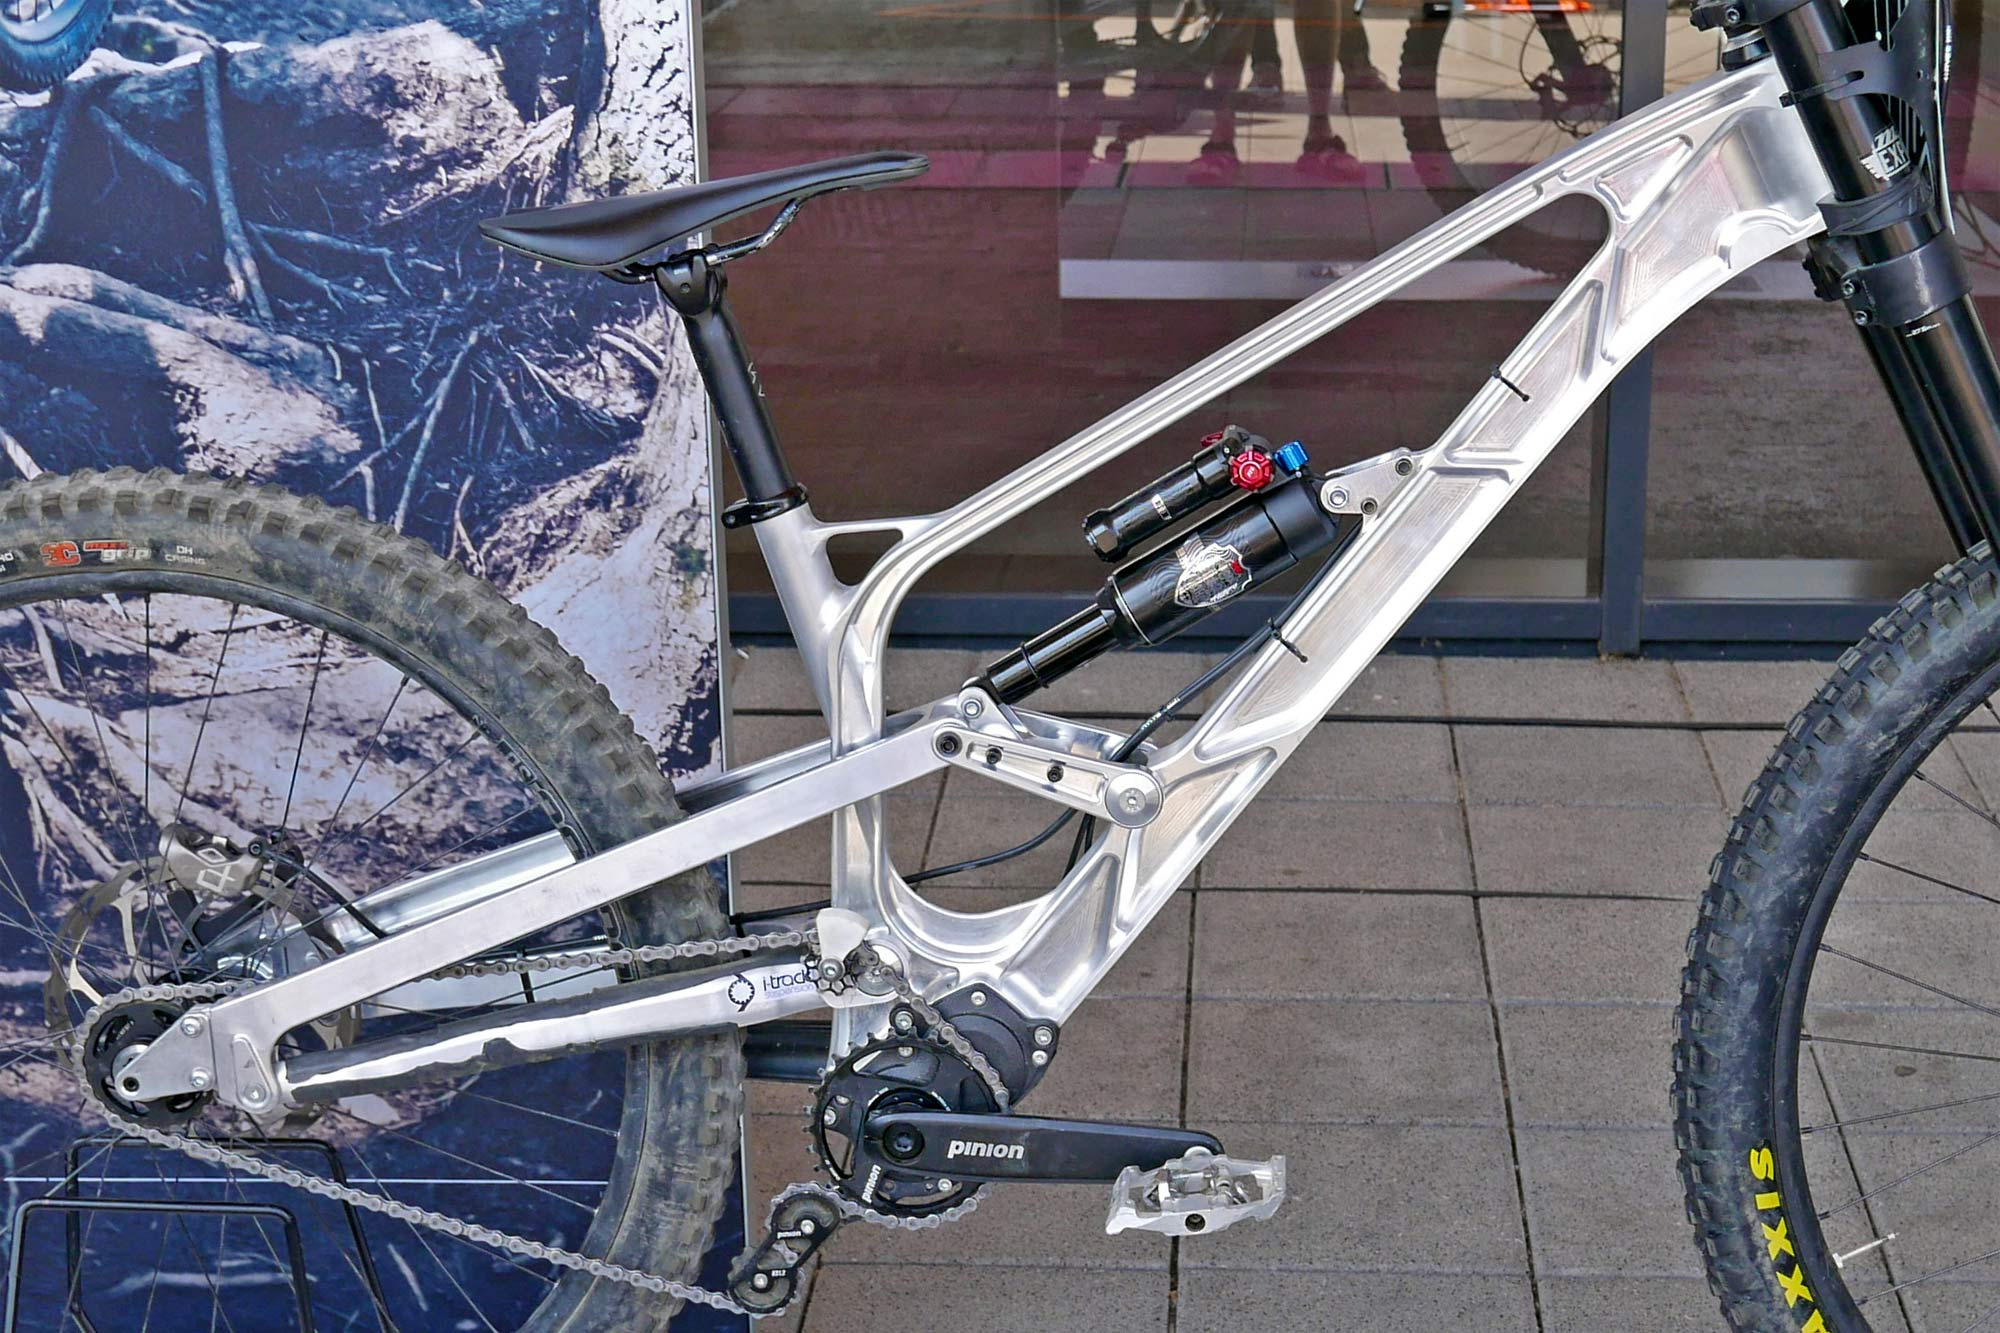 Gamux CNC 197 Gearbox DH, prototype Pinion gearbox downhill bike, frame detail